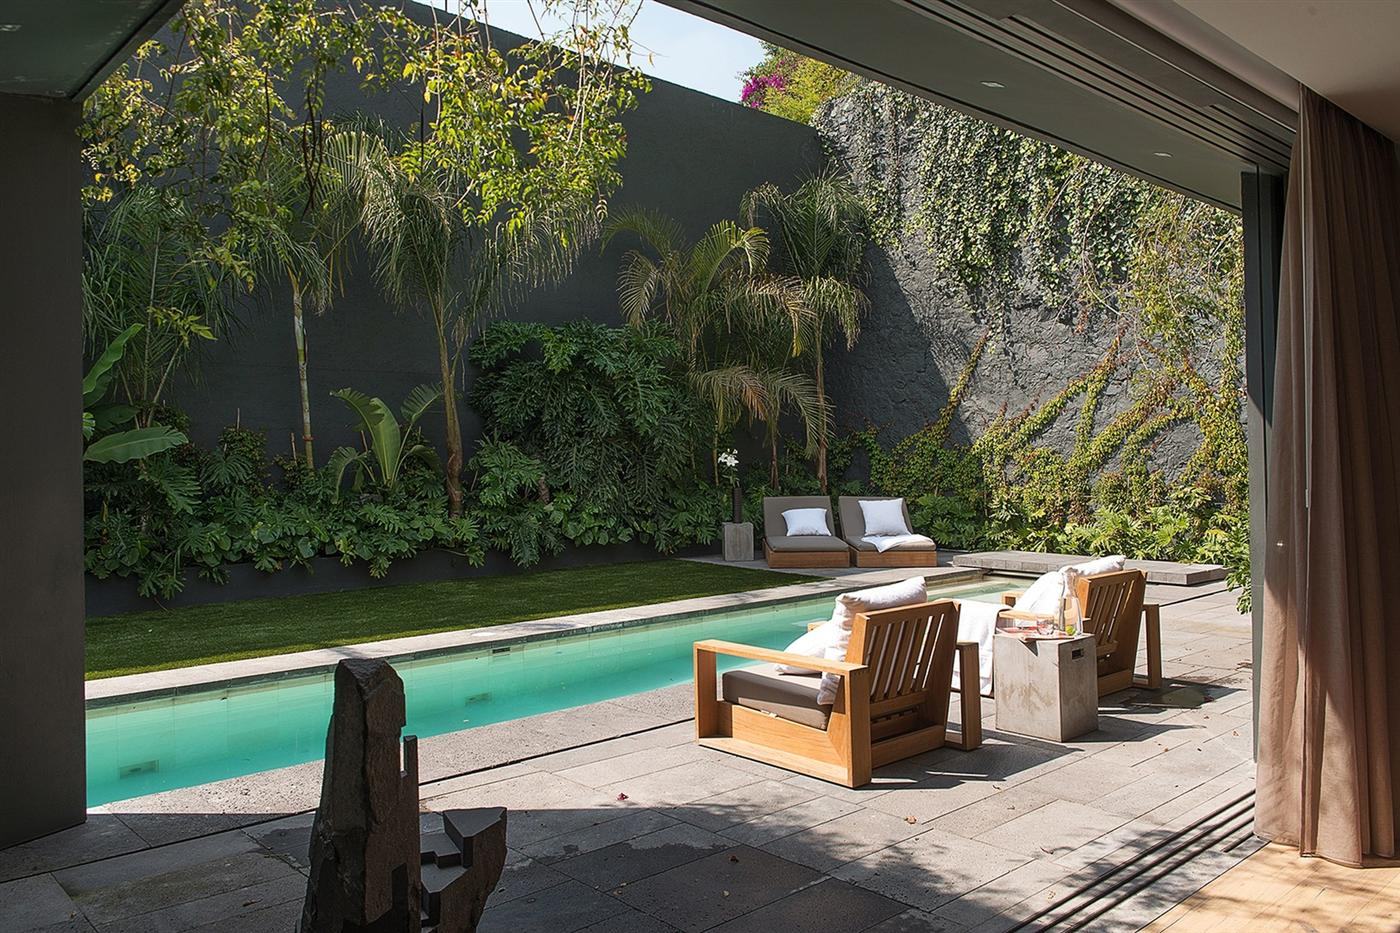 The Barranca House in Mexico City 6